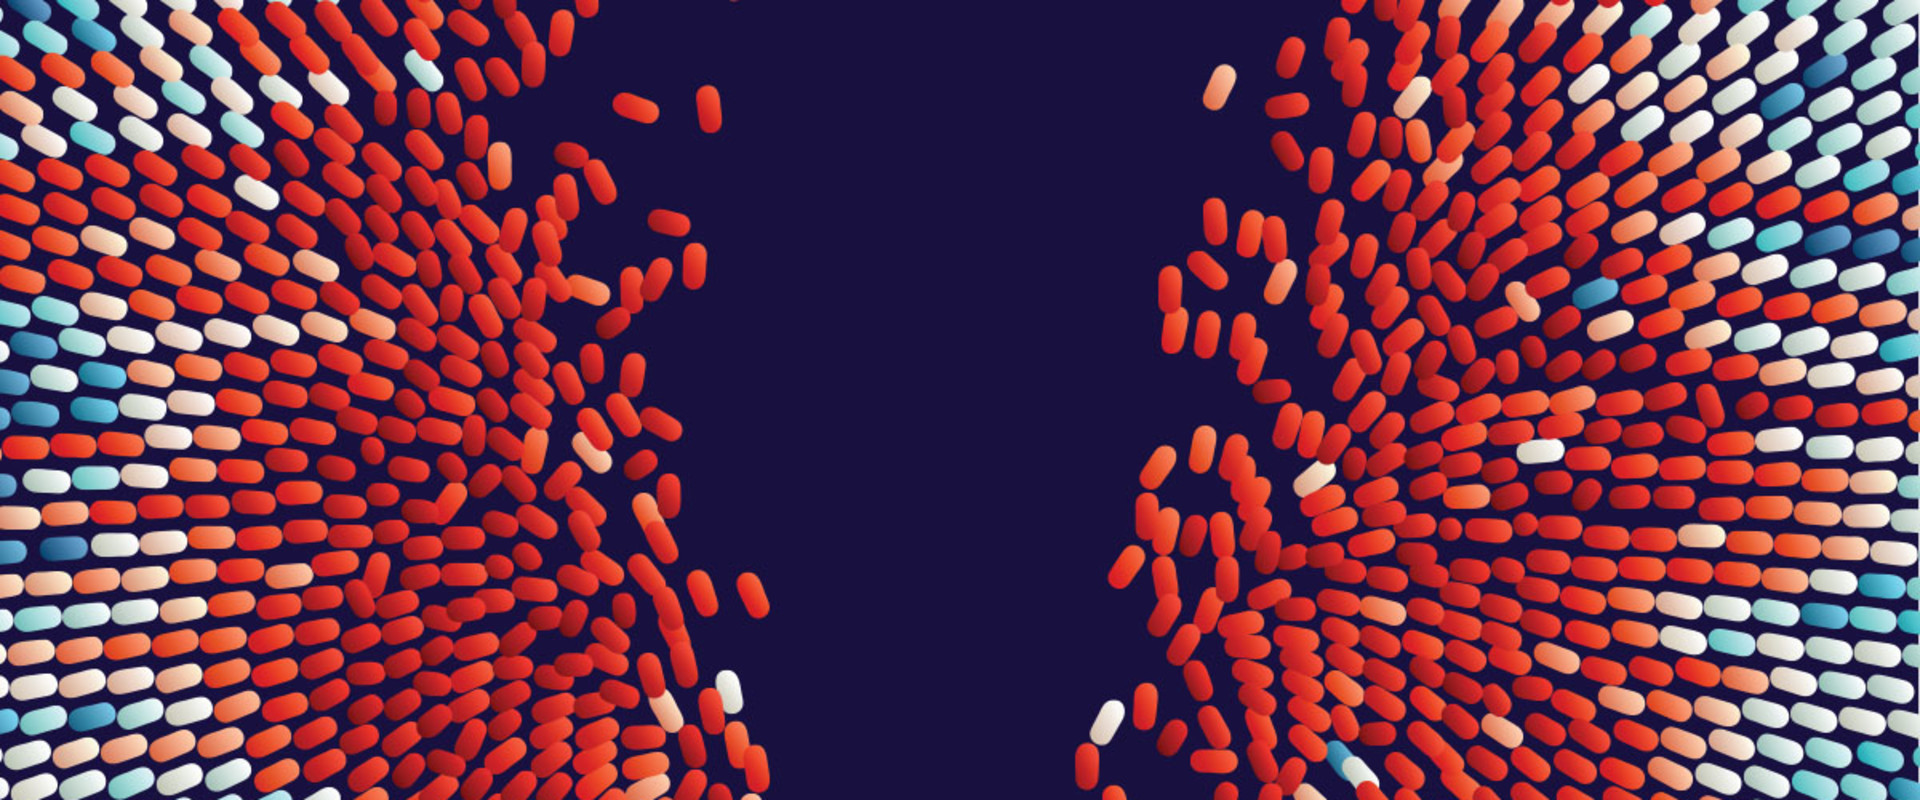 Generational Gaps in Medication Access